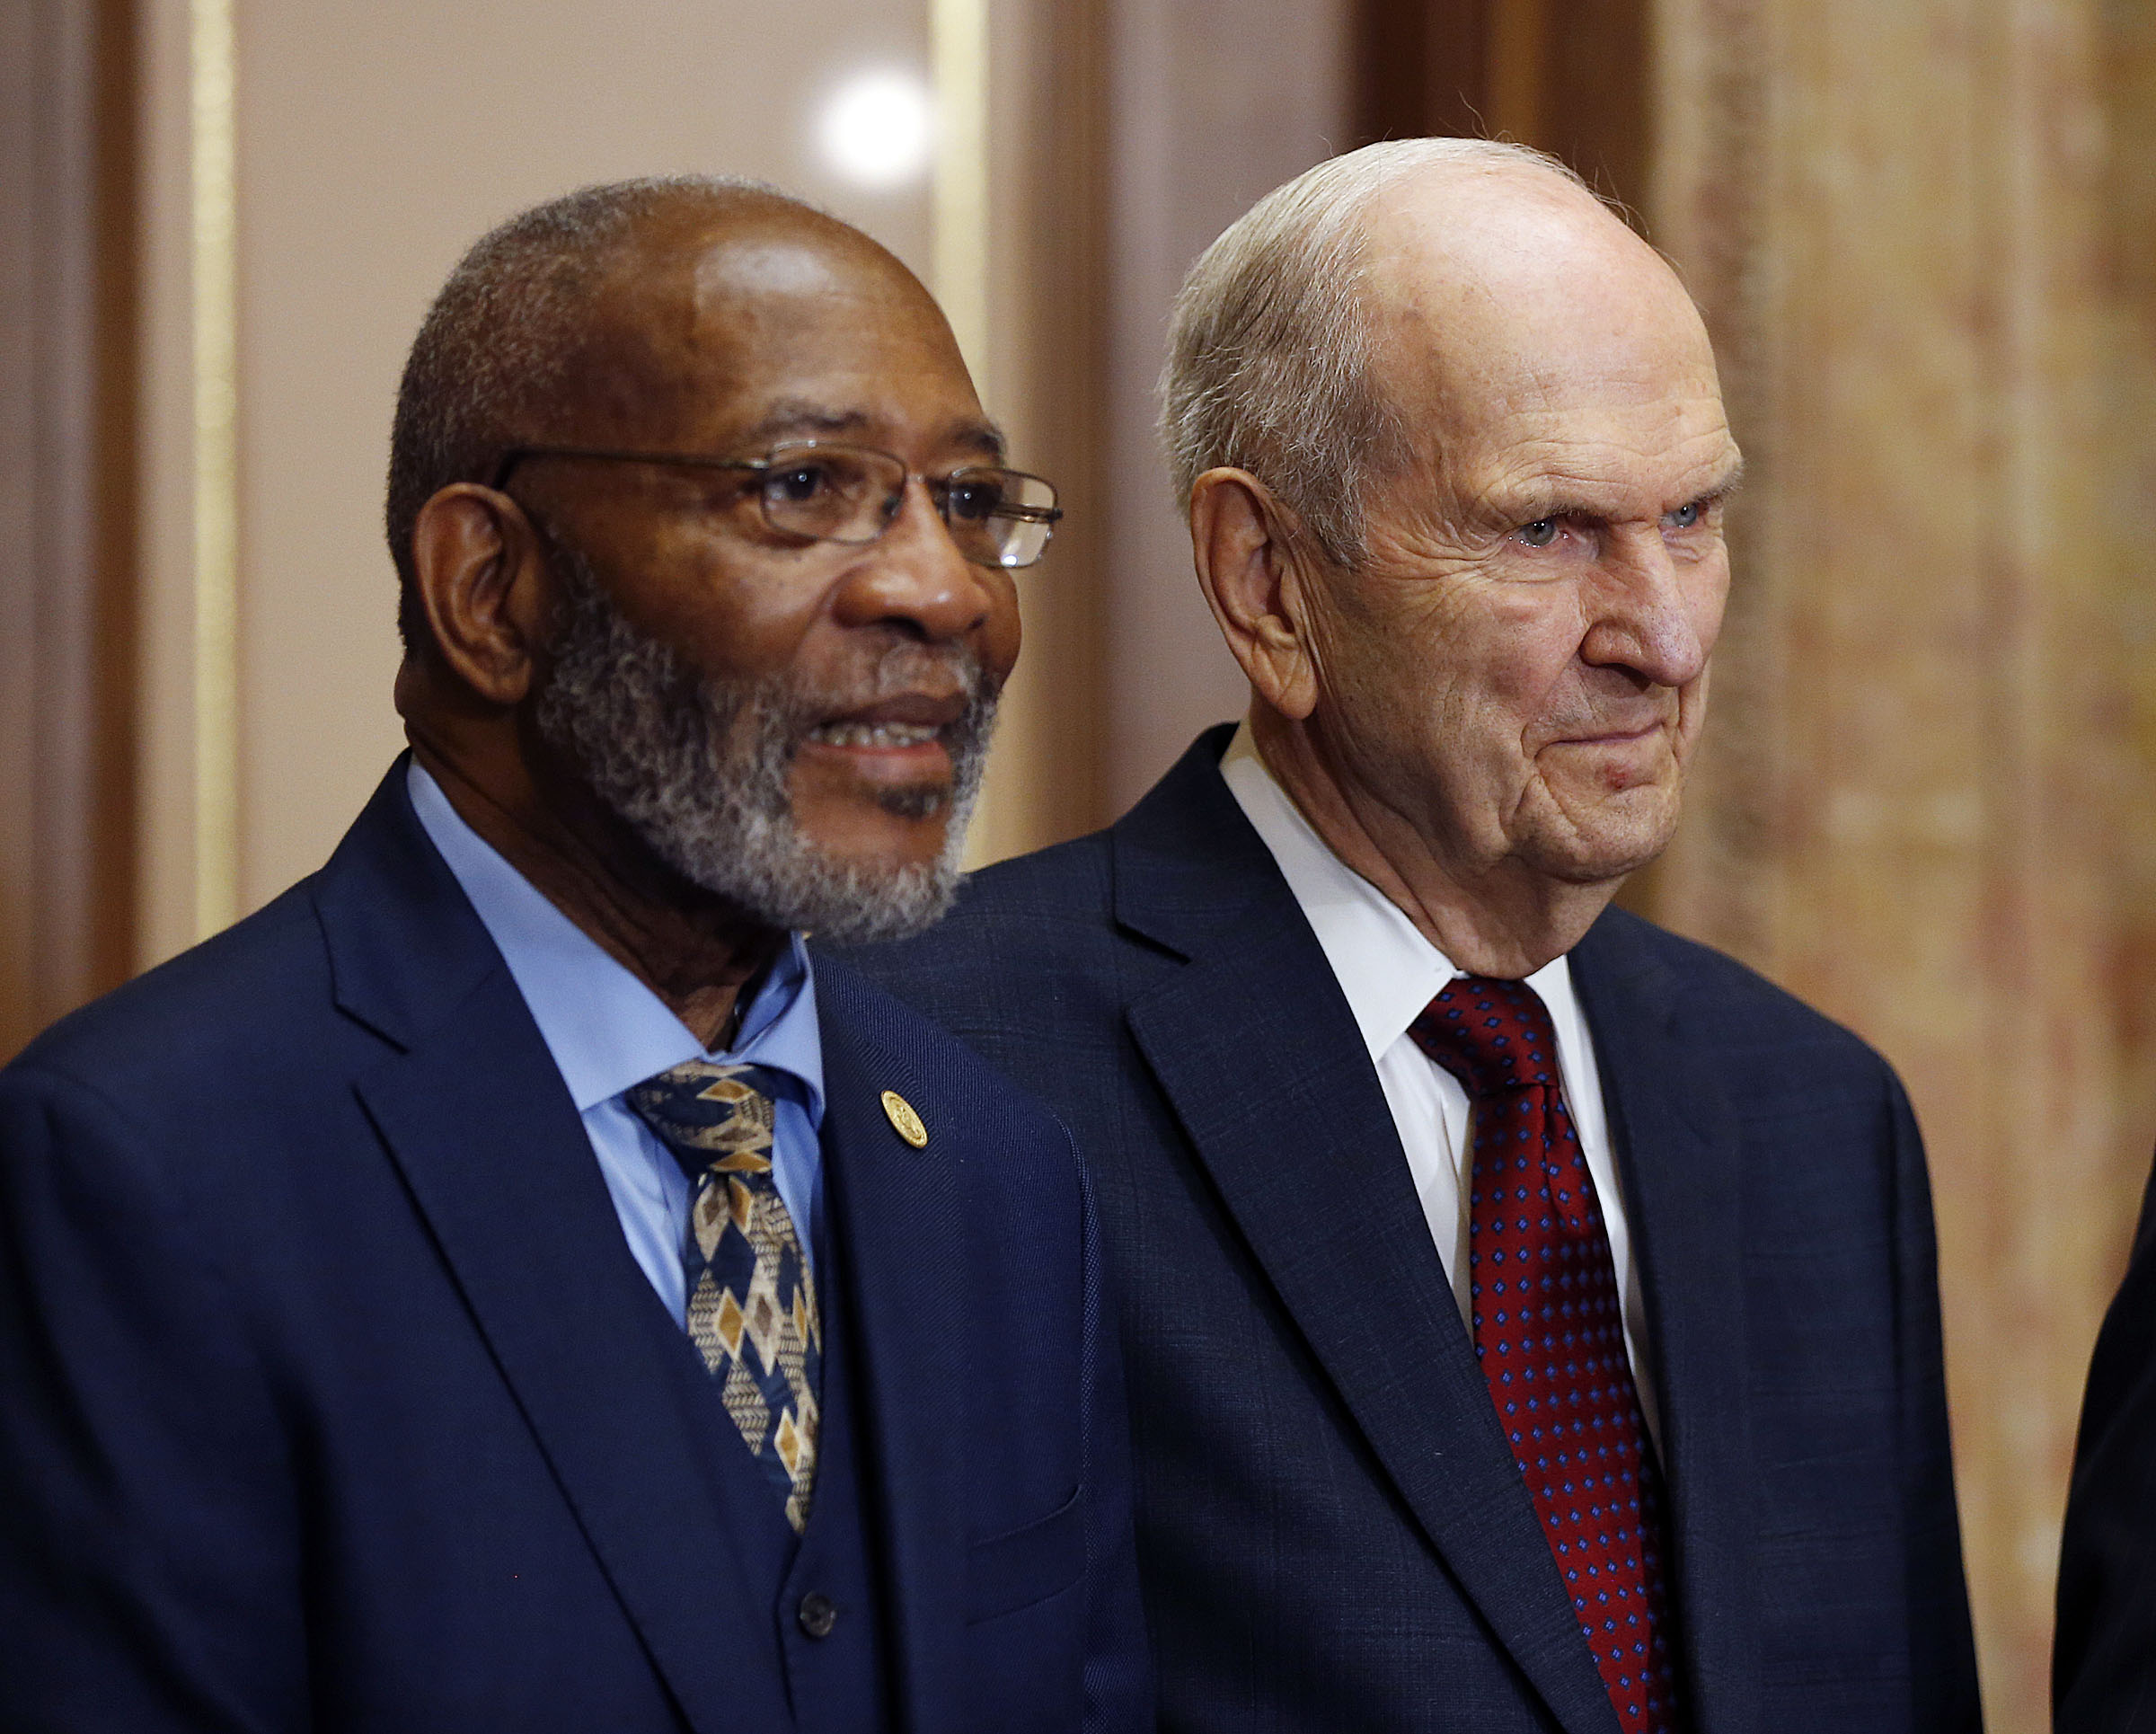 FILE - President Russell M. Nelson of The Church of Jesus Christ of Latter-day Saints, right, stands with the Rev. Amos C. Brown during a press conference in Salt Lake City on Thursday, May 17, 2018.